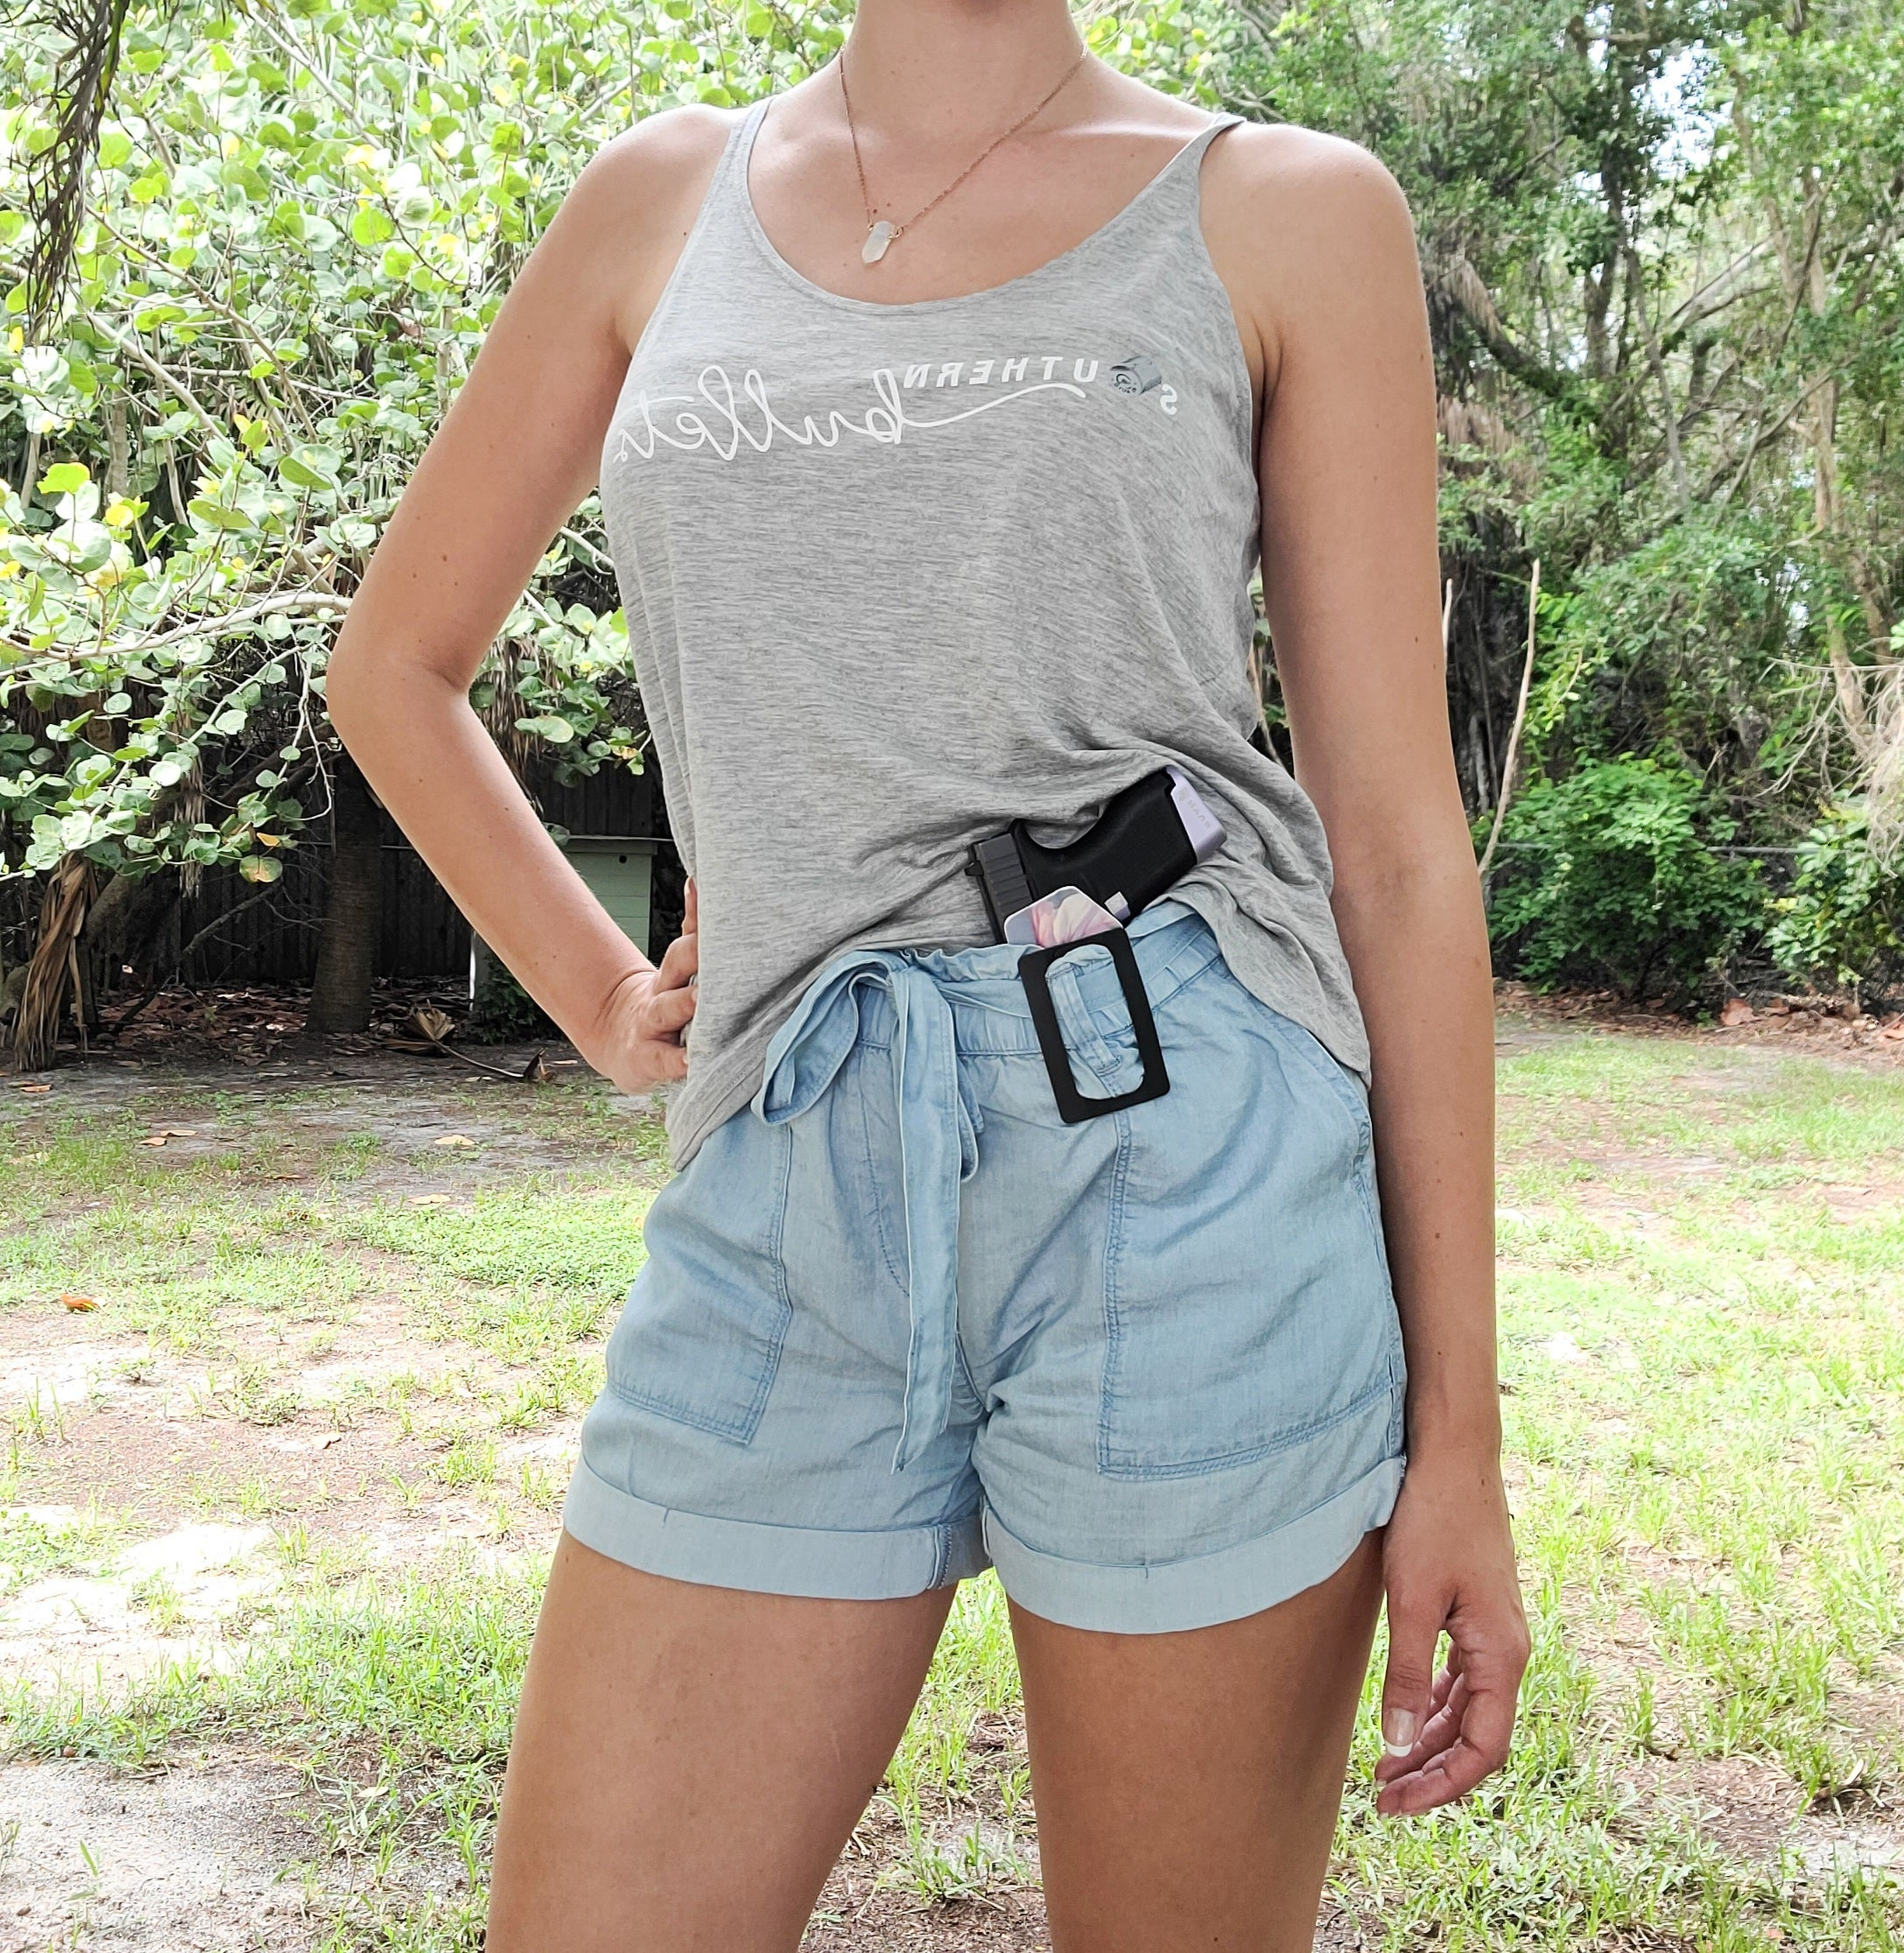 Southern Bullets CCW Tank Top - GRAY